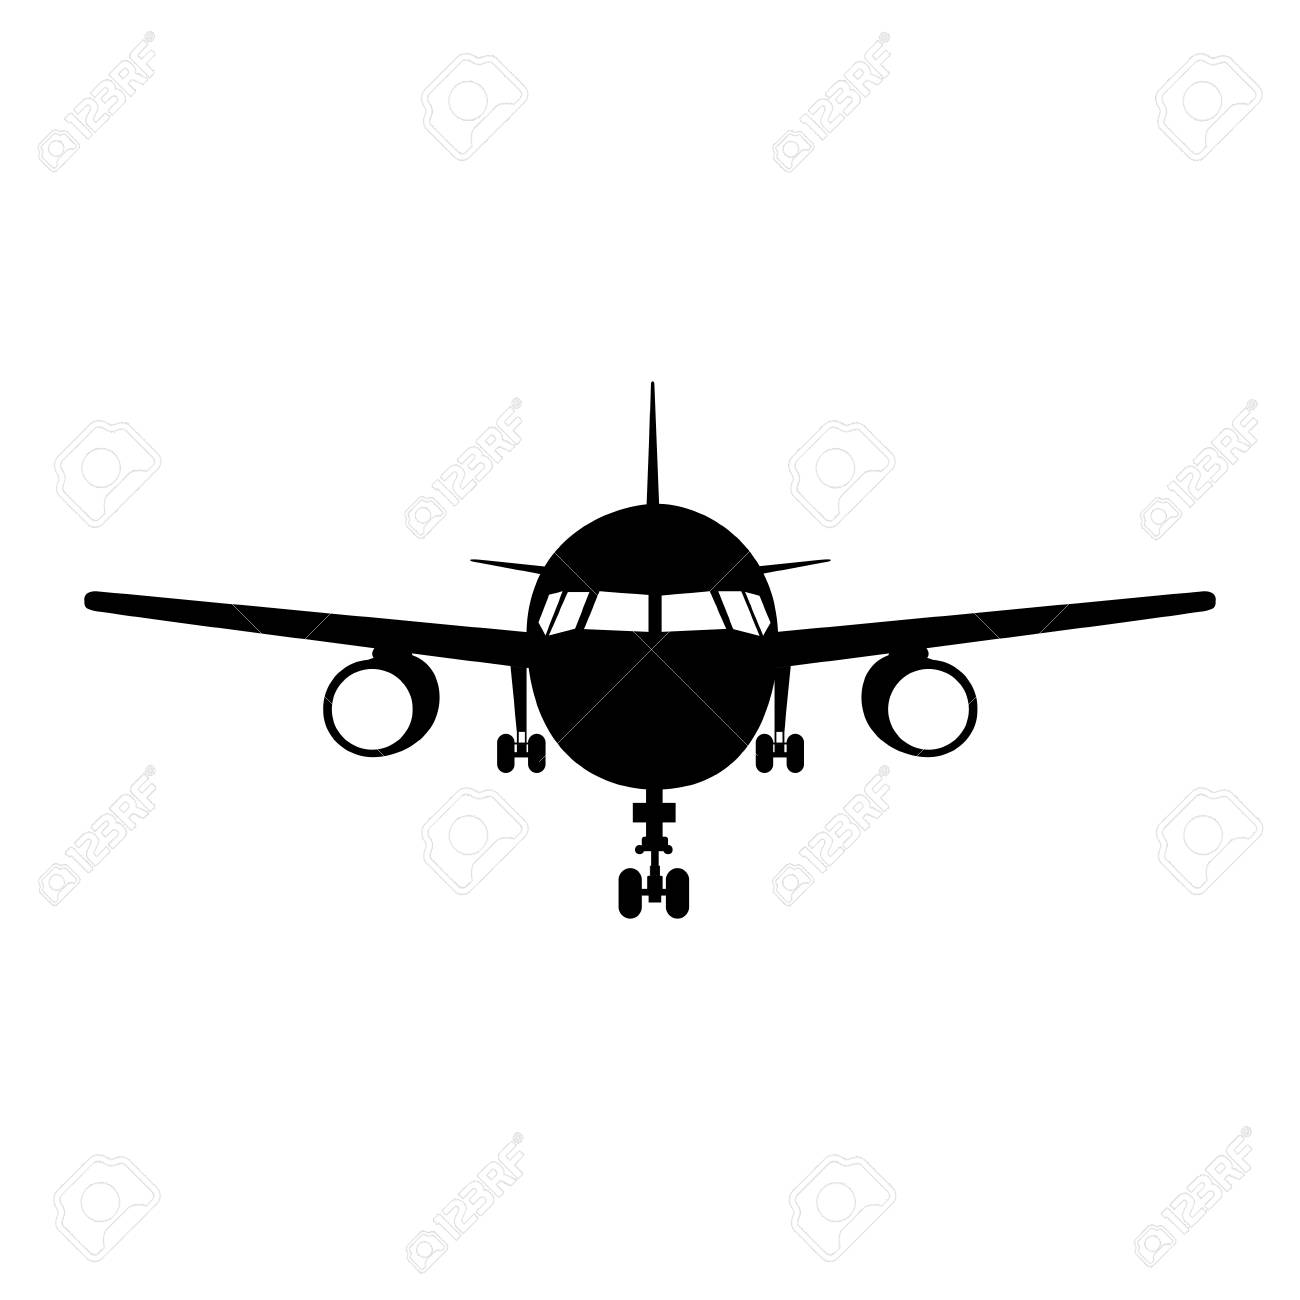 Silhouette Of Airplane Vehicle Over White Background Front View